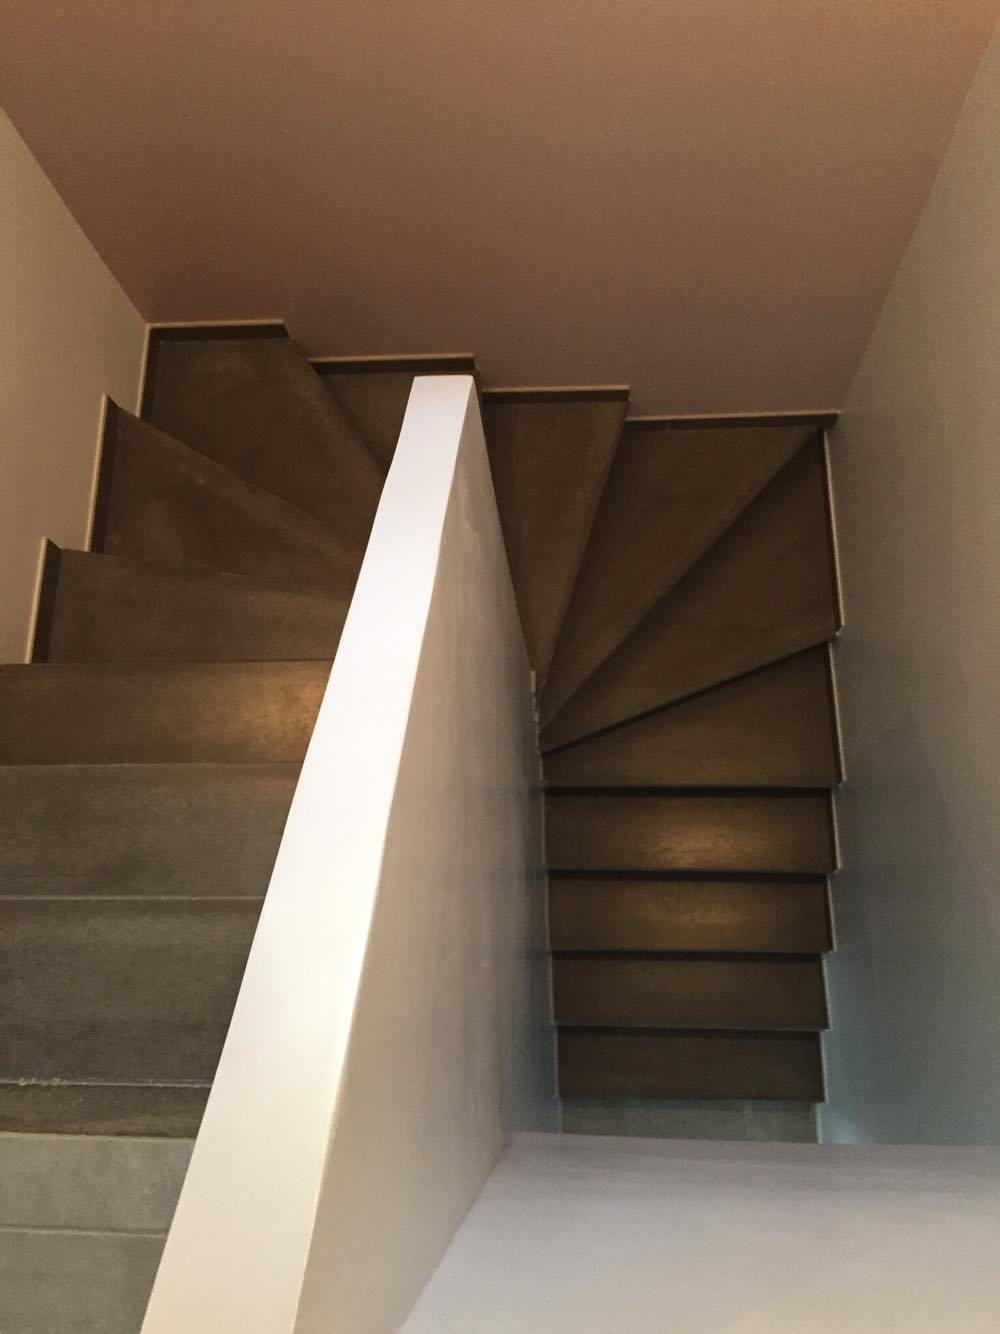 deco escalier beton  top free good beton cire sur escalier en bois exemple dhabillage descalier